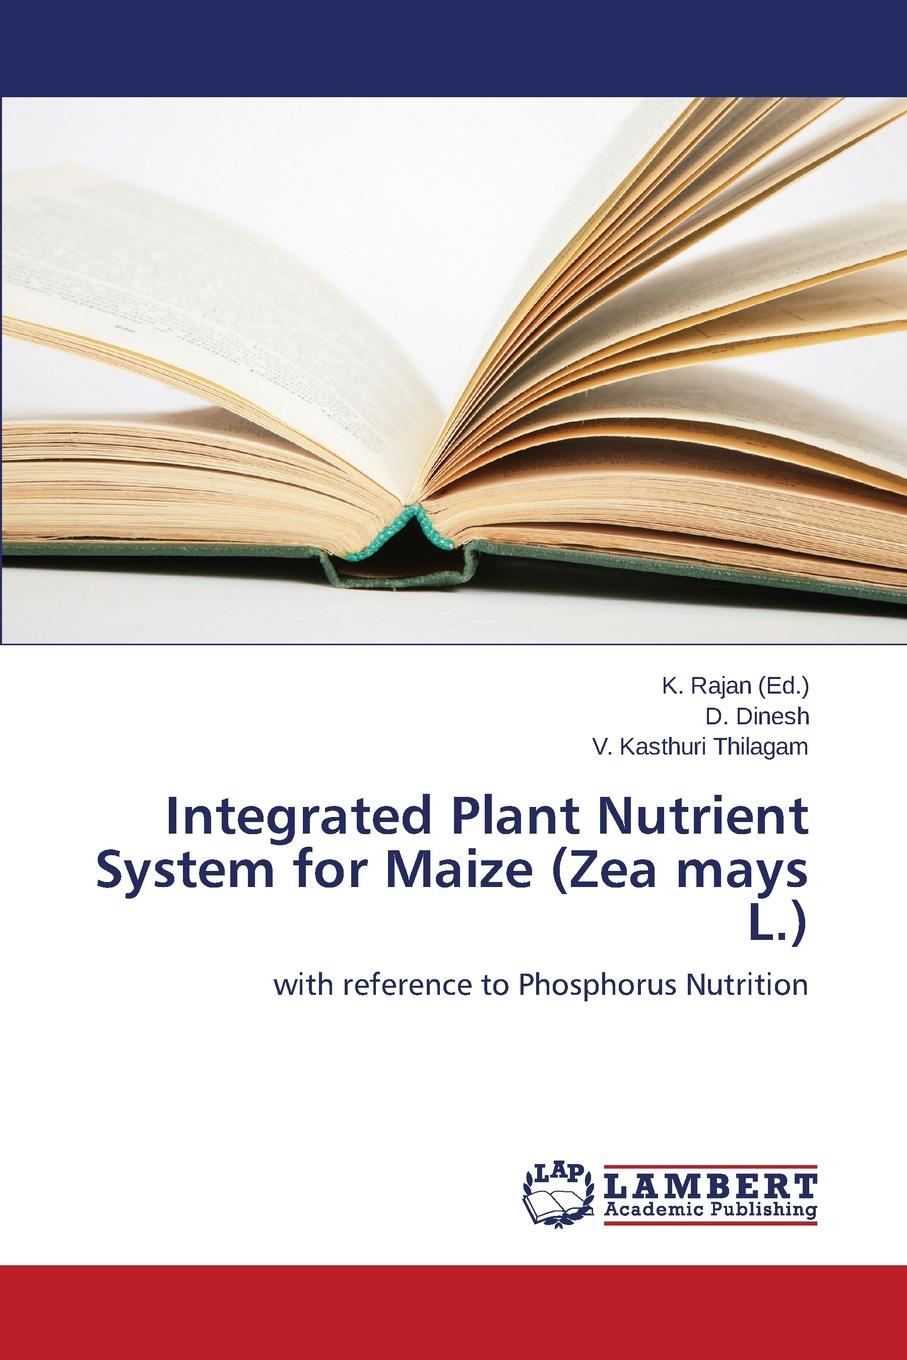 Dinesh D., Kasthuri Thilagam V. Integrated Plant Nutrient System for Maize (Zea mays L.)